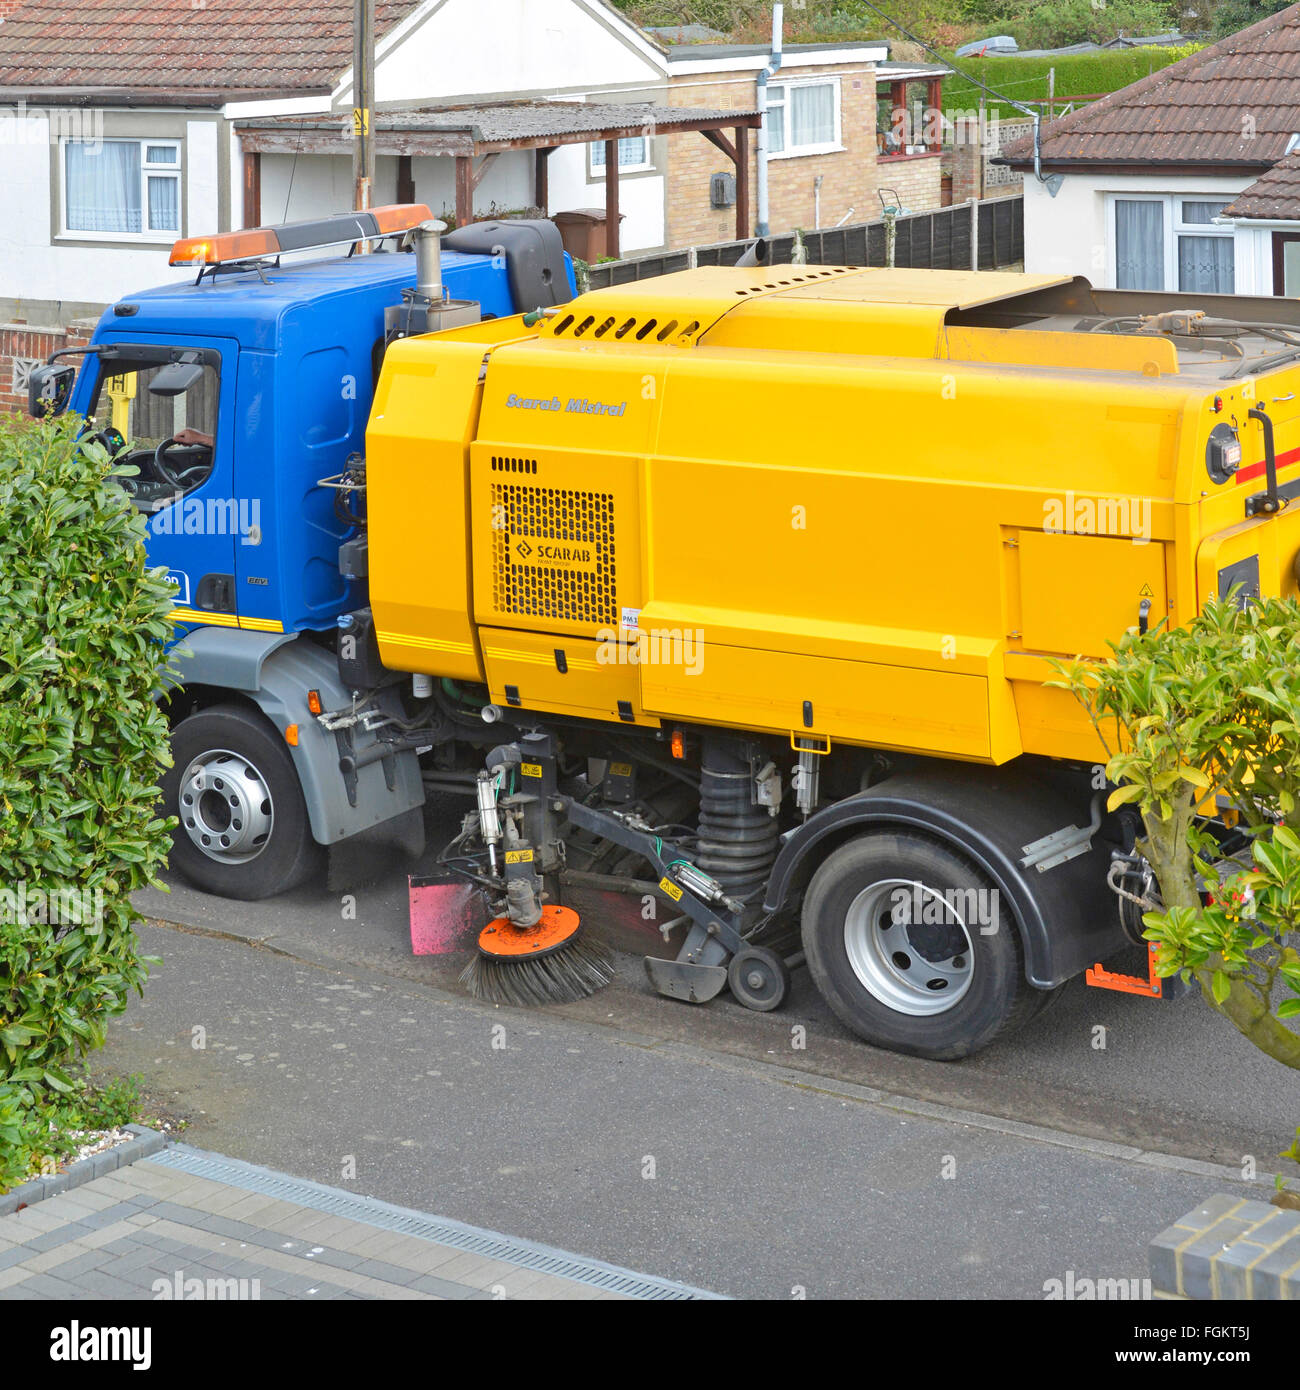 Local government gutter cleaning services via mechanical sweeper brushes mounted on Daf lorry passing domestic property - Stock Image